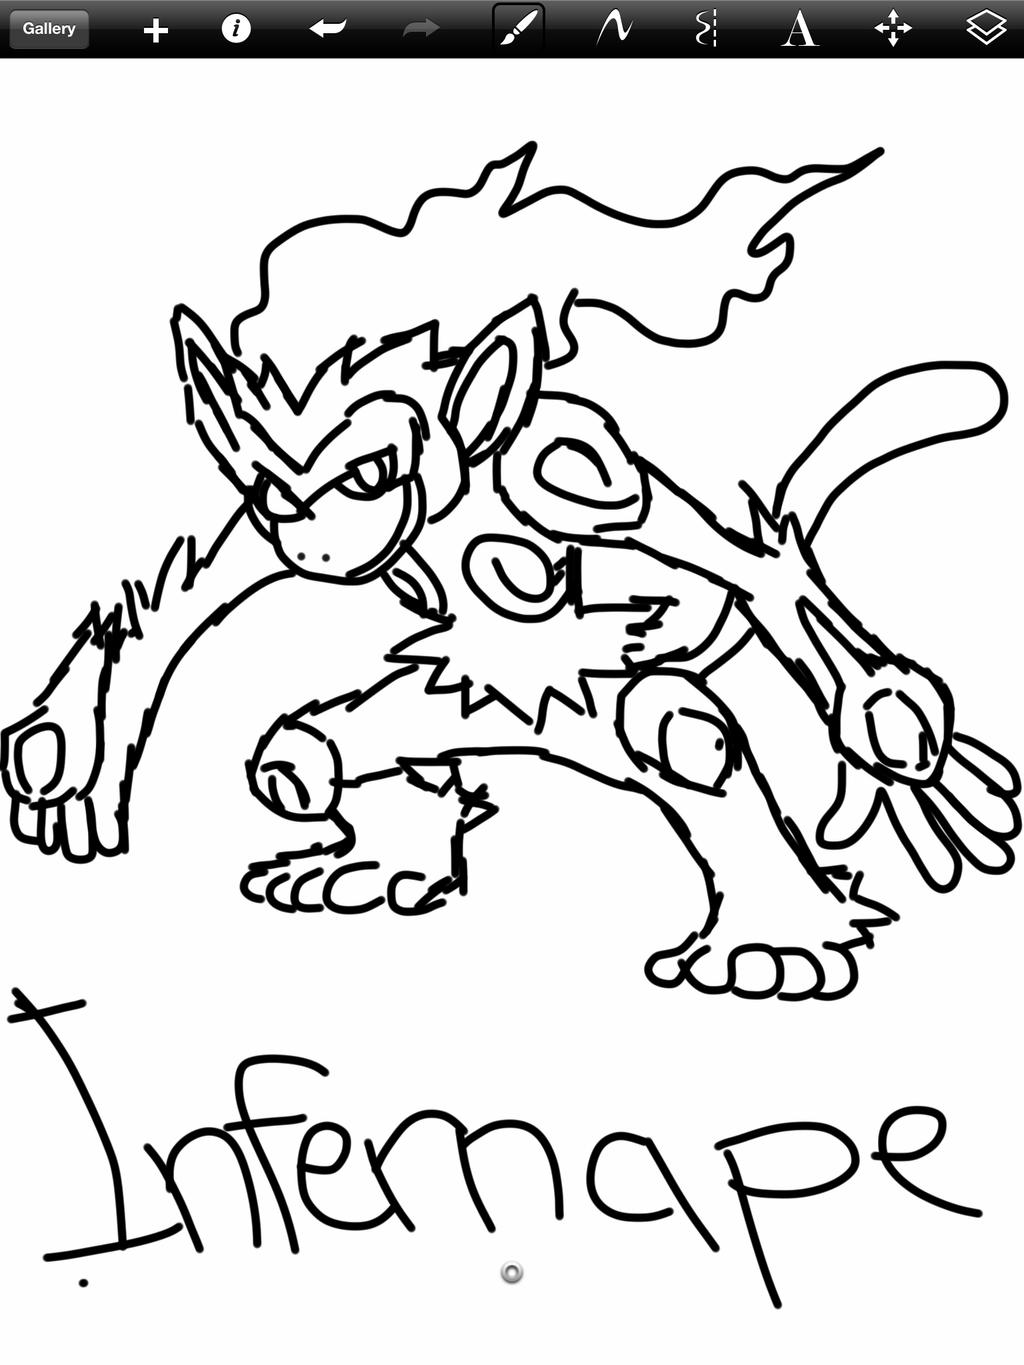 torterra pokemon coloring pages - photo#29